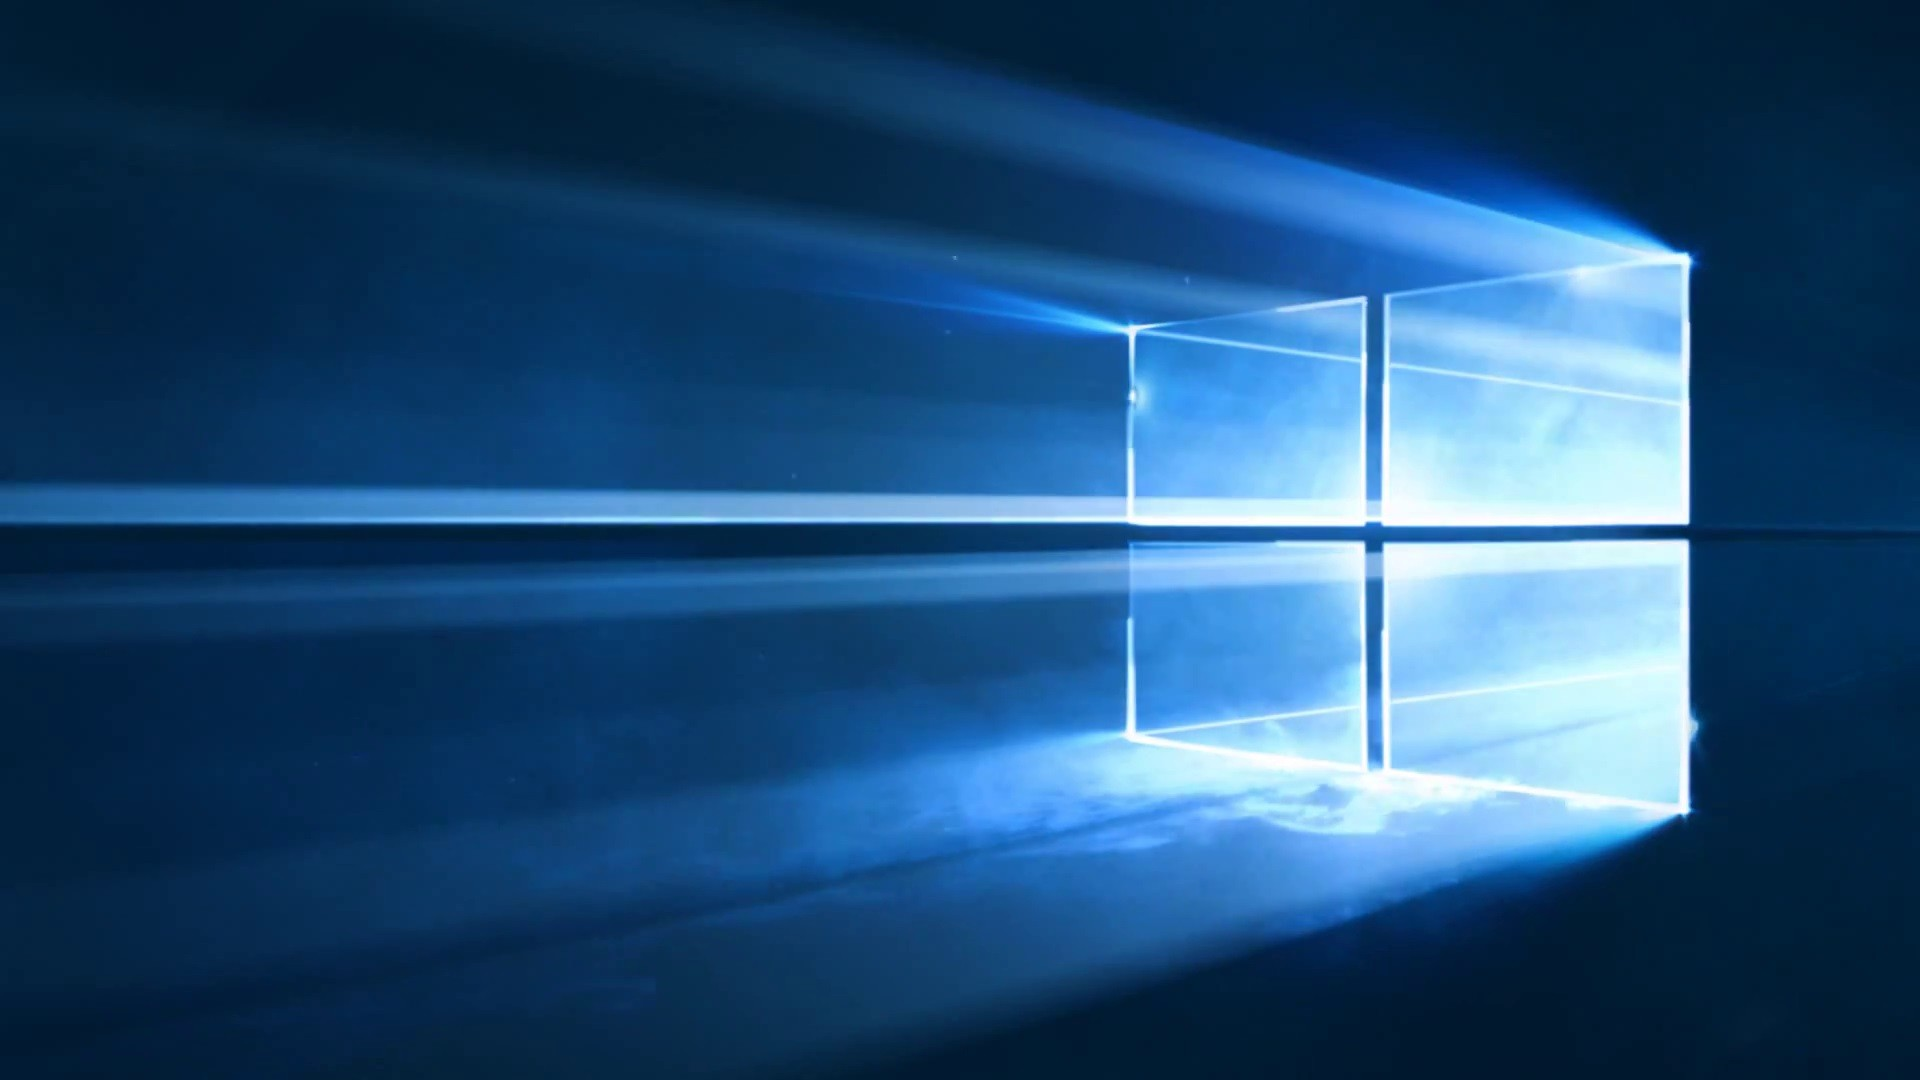 Windows 10 Original Wallpaper: Los 44 Mejores Trucos De Windows 10